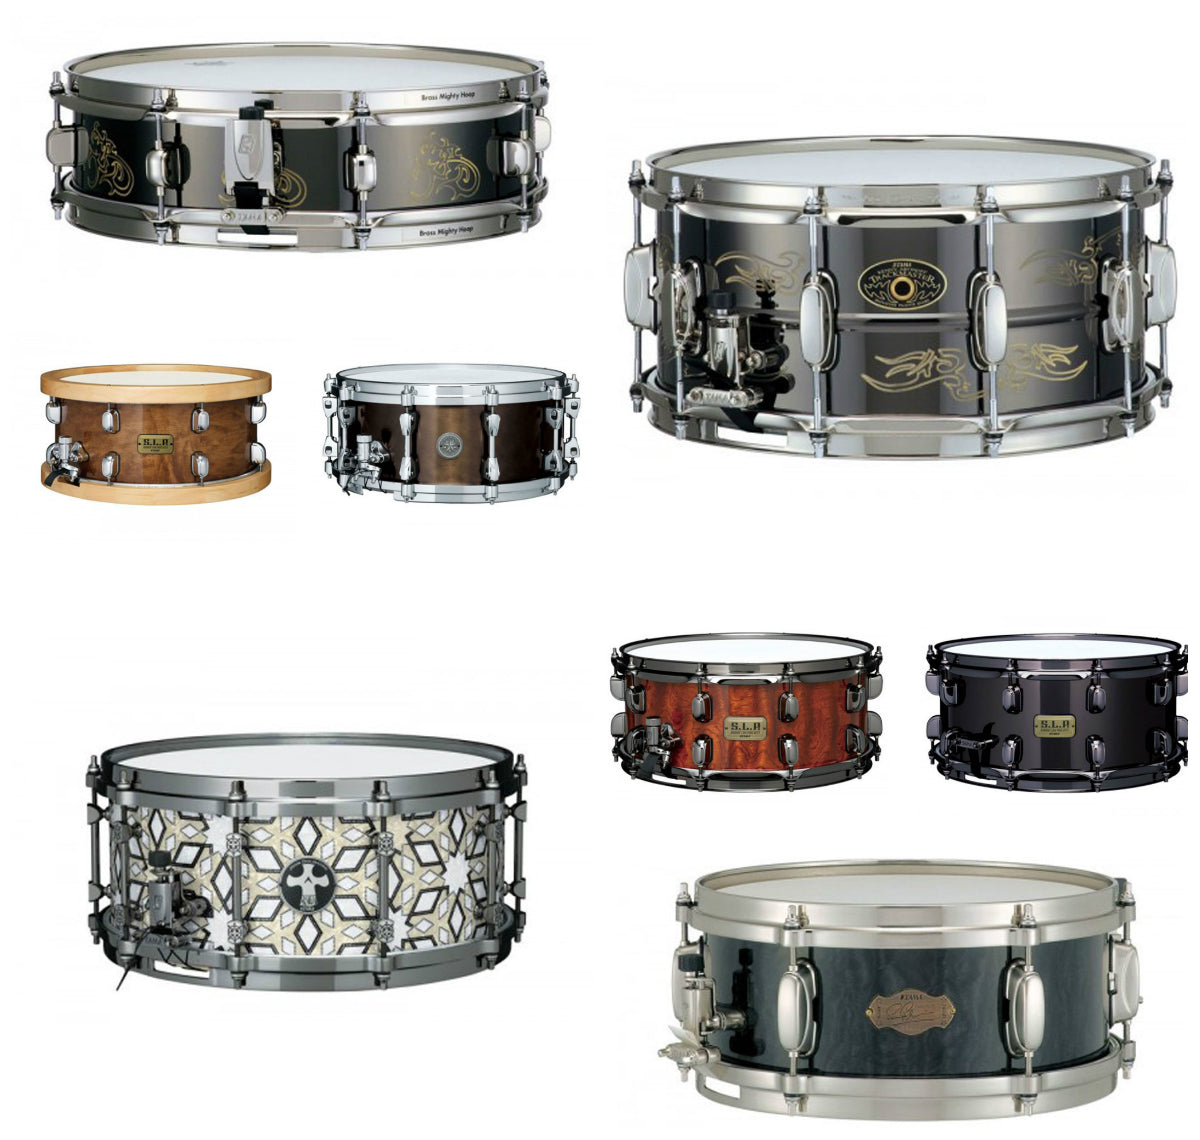 Snare Drums from Tama